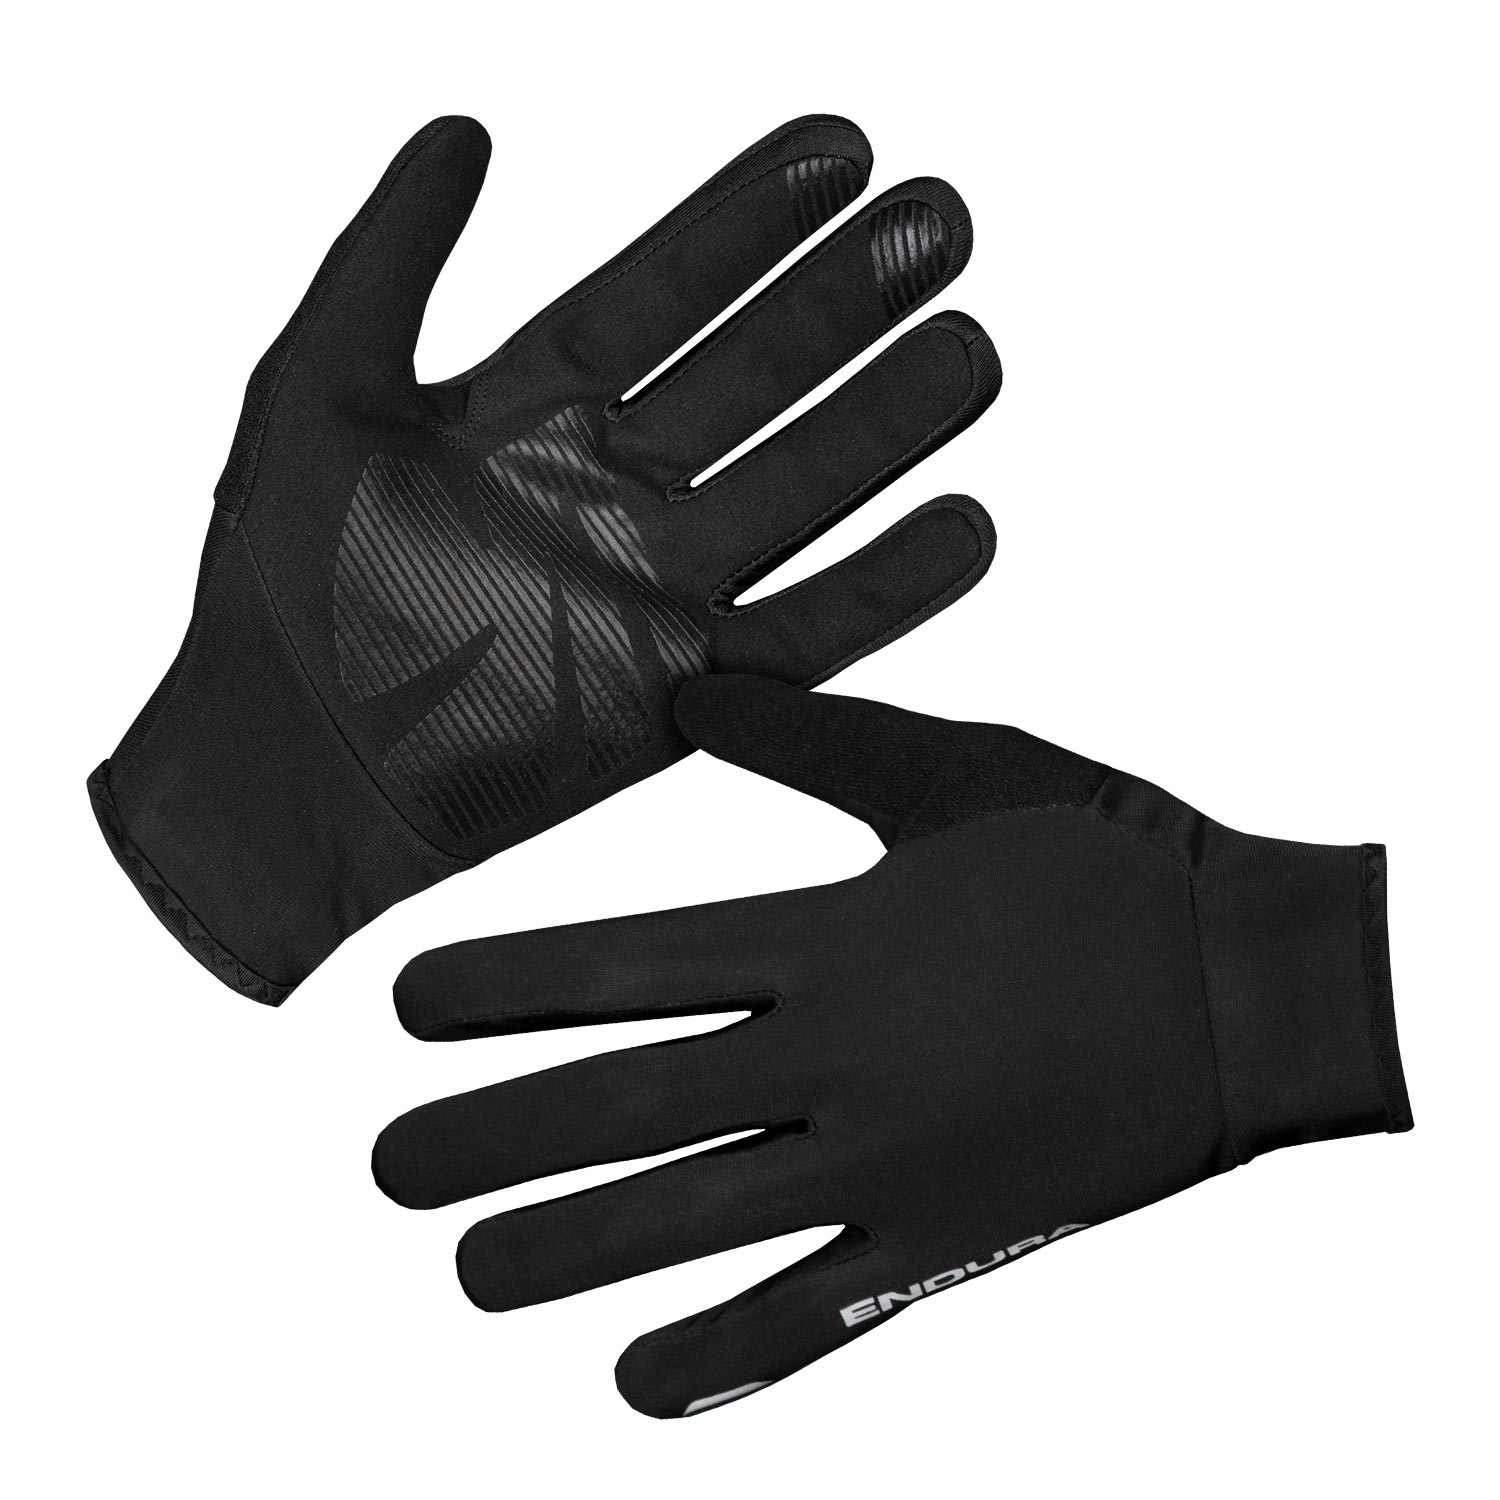 Endura FS260-Pro (Medium) Thermo Cycling Gloves